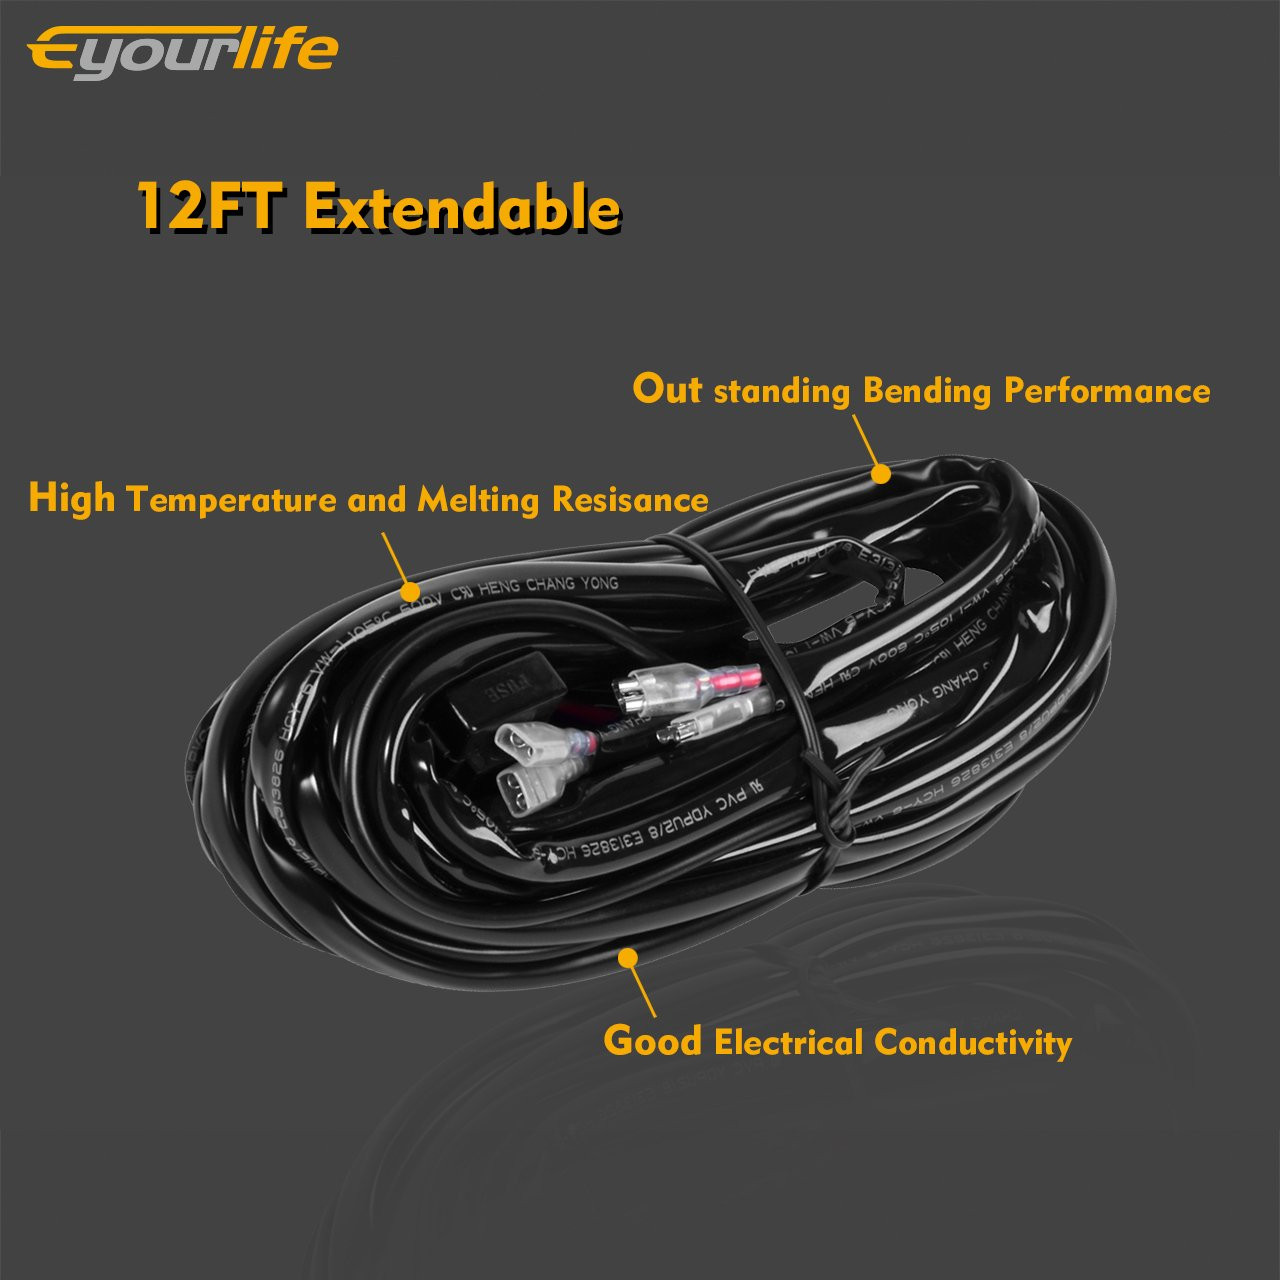 71pmW6YLQfL._SL1280_ amazon com wiring harness,eyourlife 300w 9ft led light bar wiring eyourlife wiring harness diagram at soozxer.org